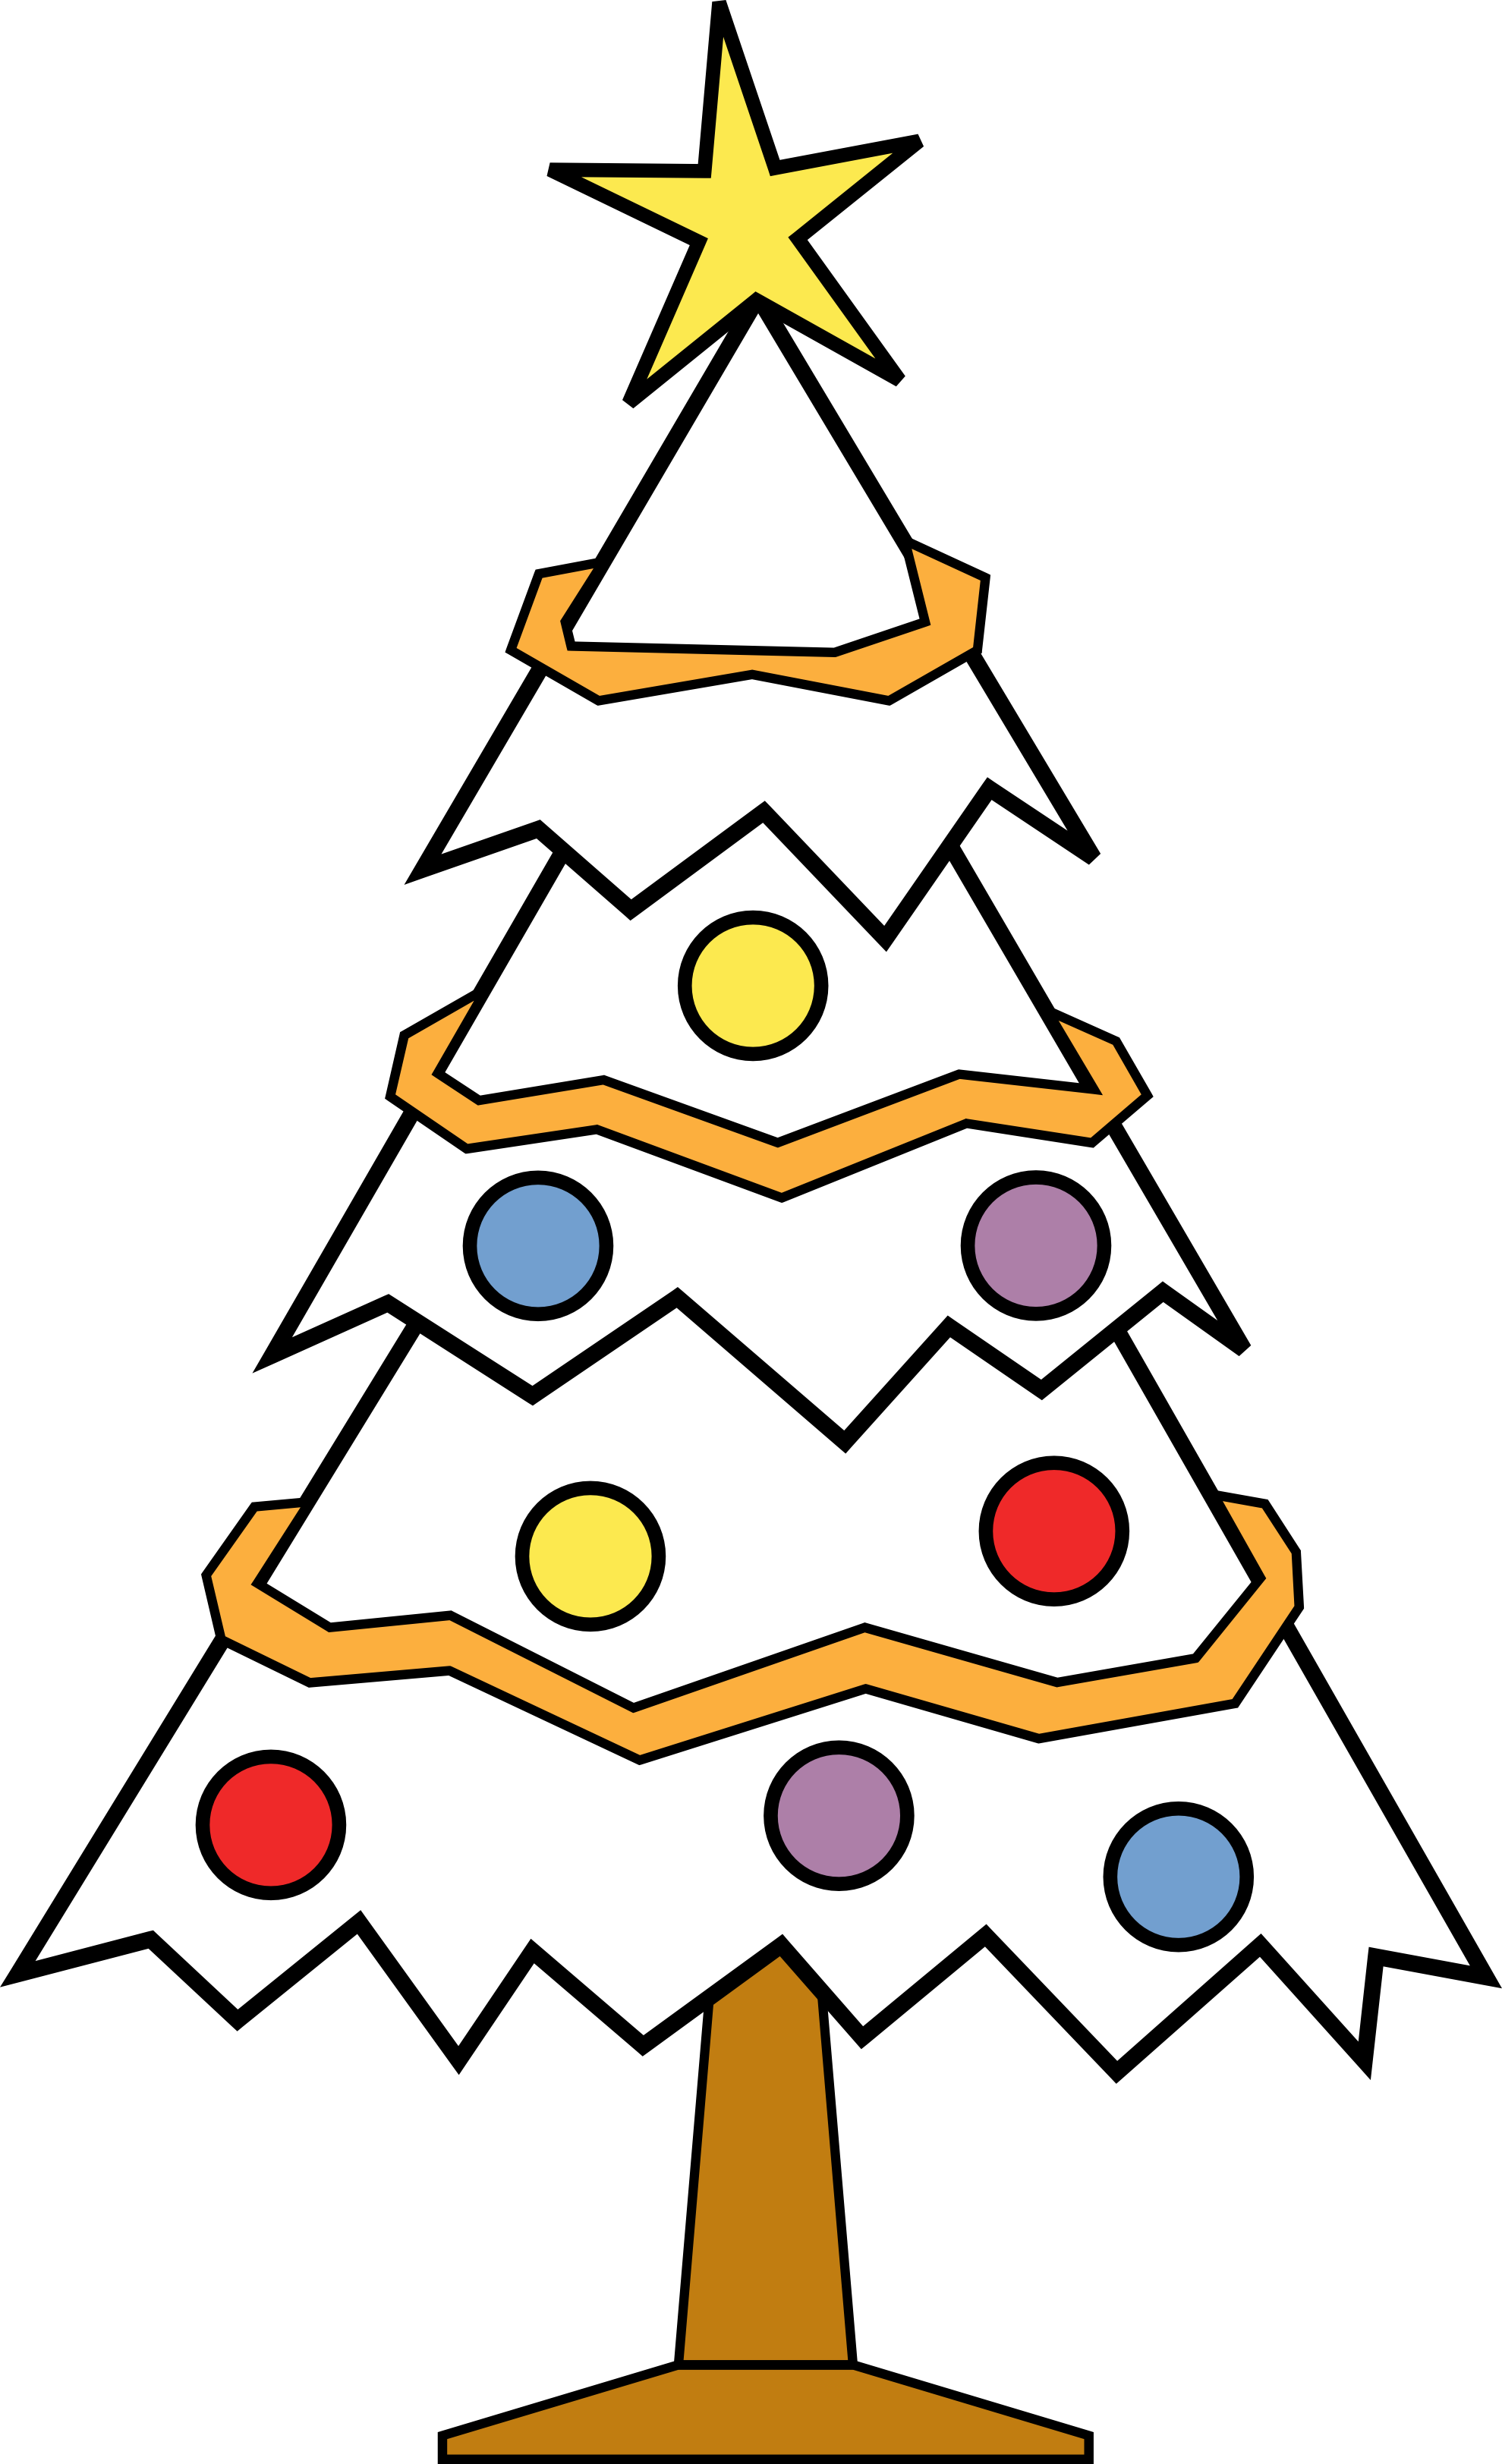 Christmas Tree Clipart Black And White.Drawing Present Christmas Tree Transparent Png Clipart